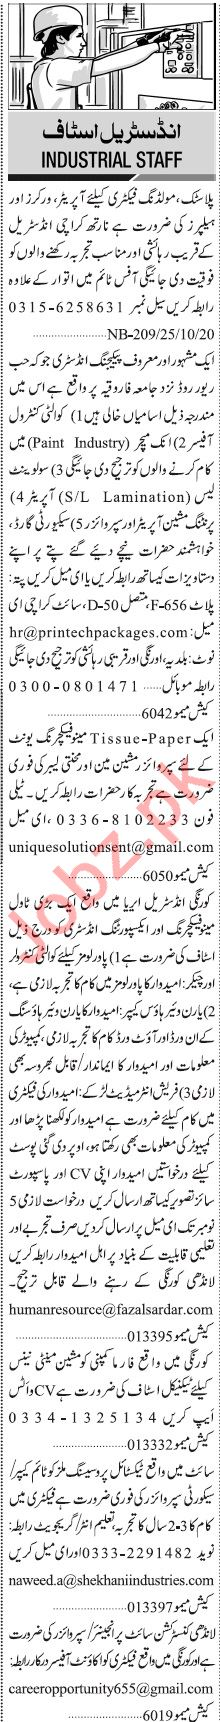 Jang Sunday Classified Ads 25 Oct 2020 for Industrial Staff